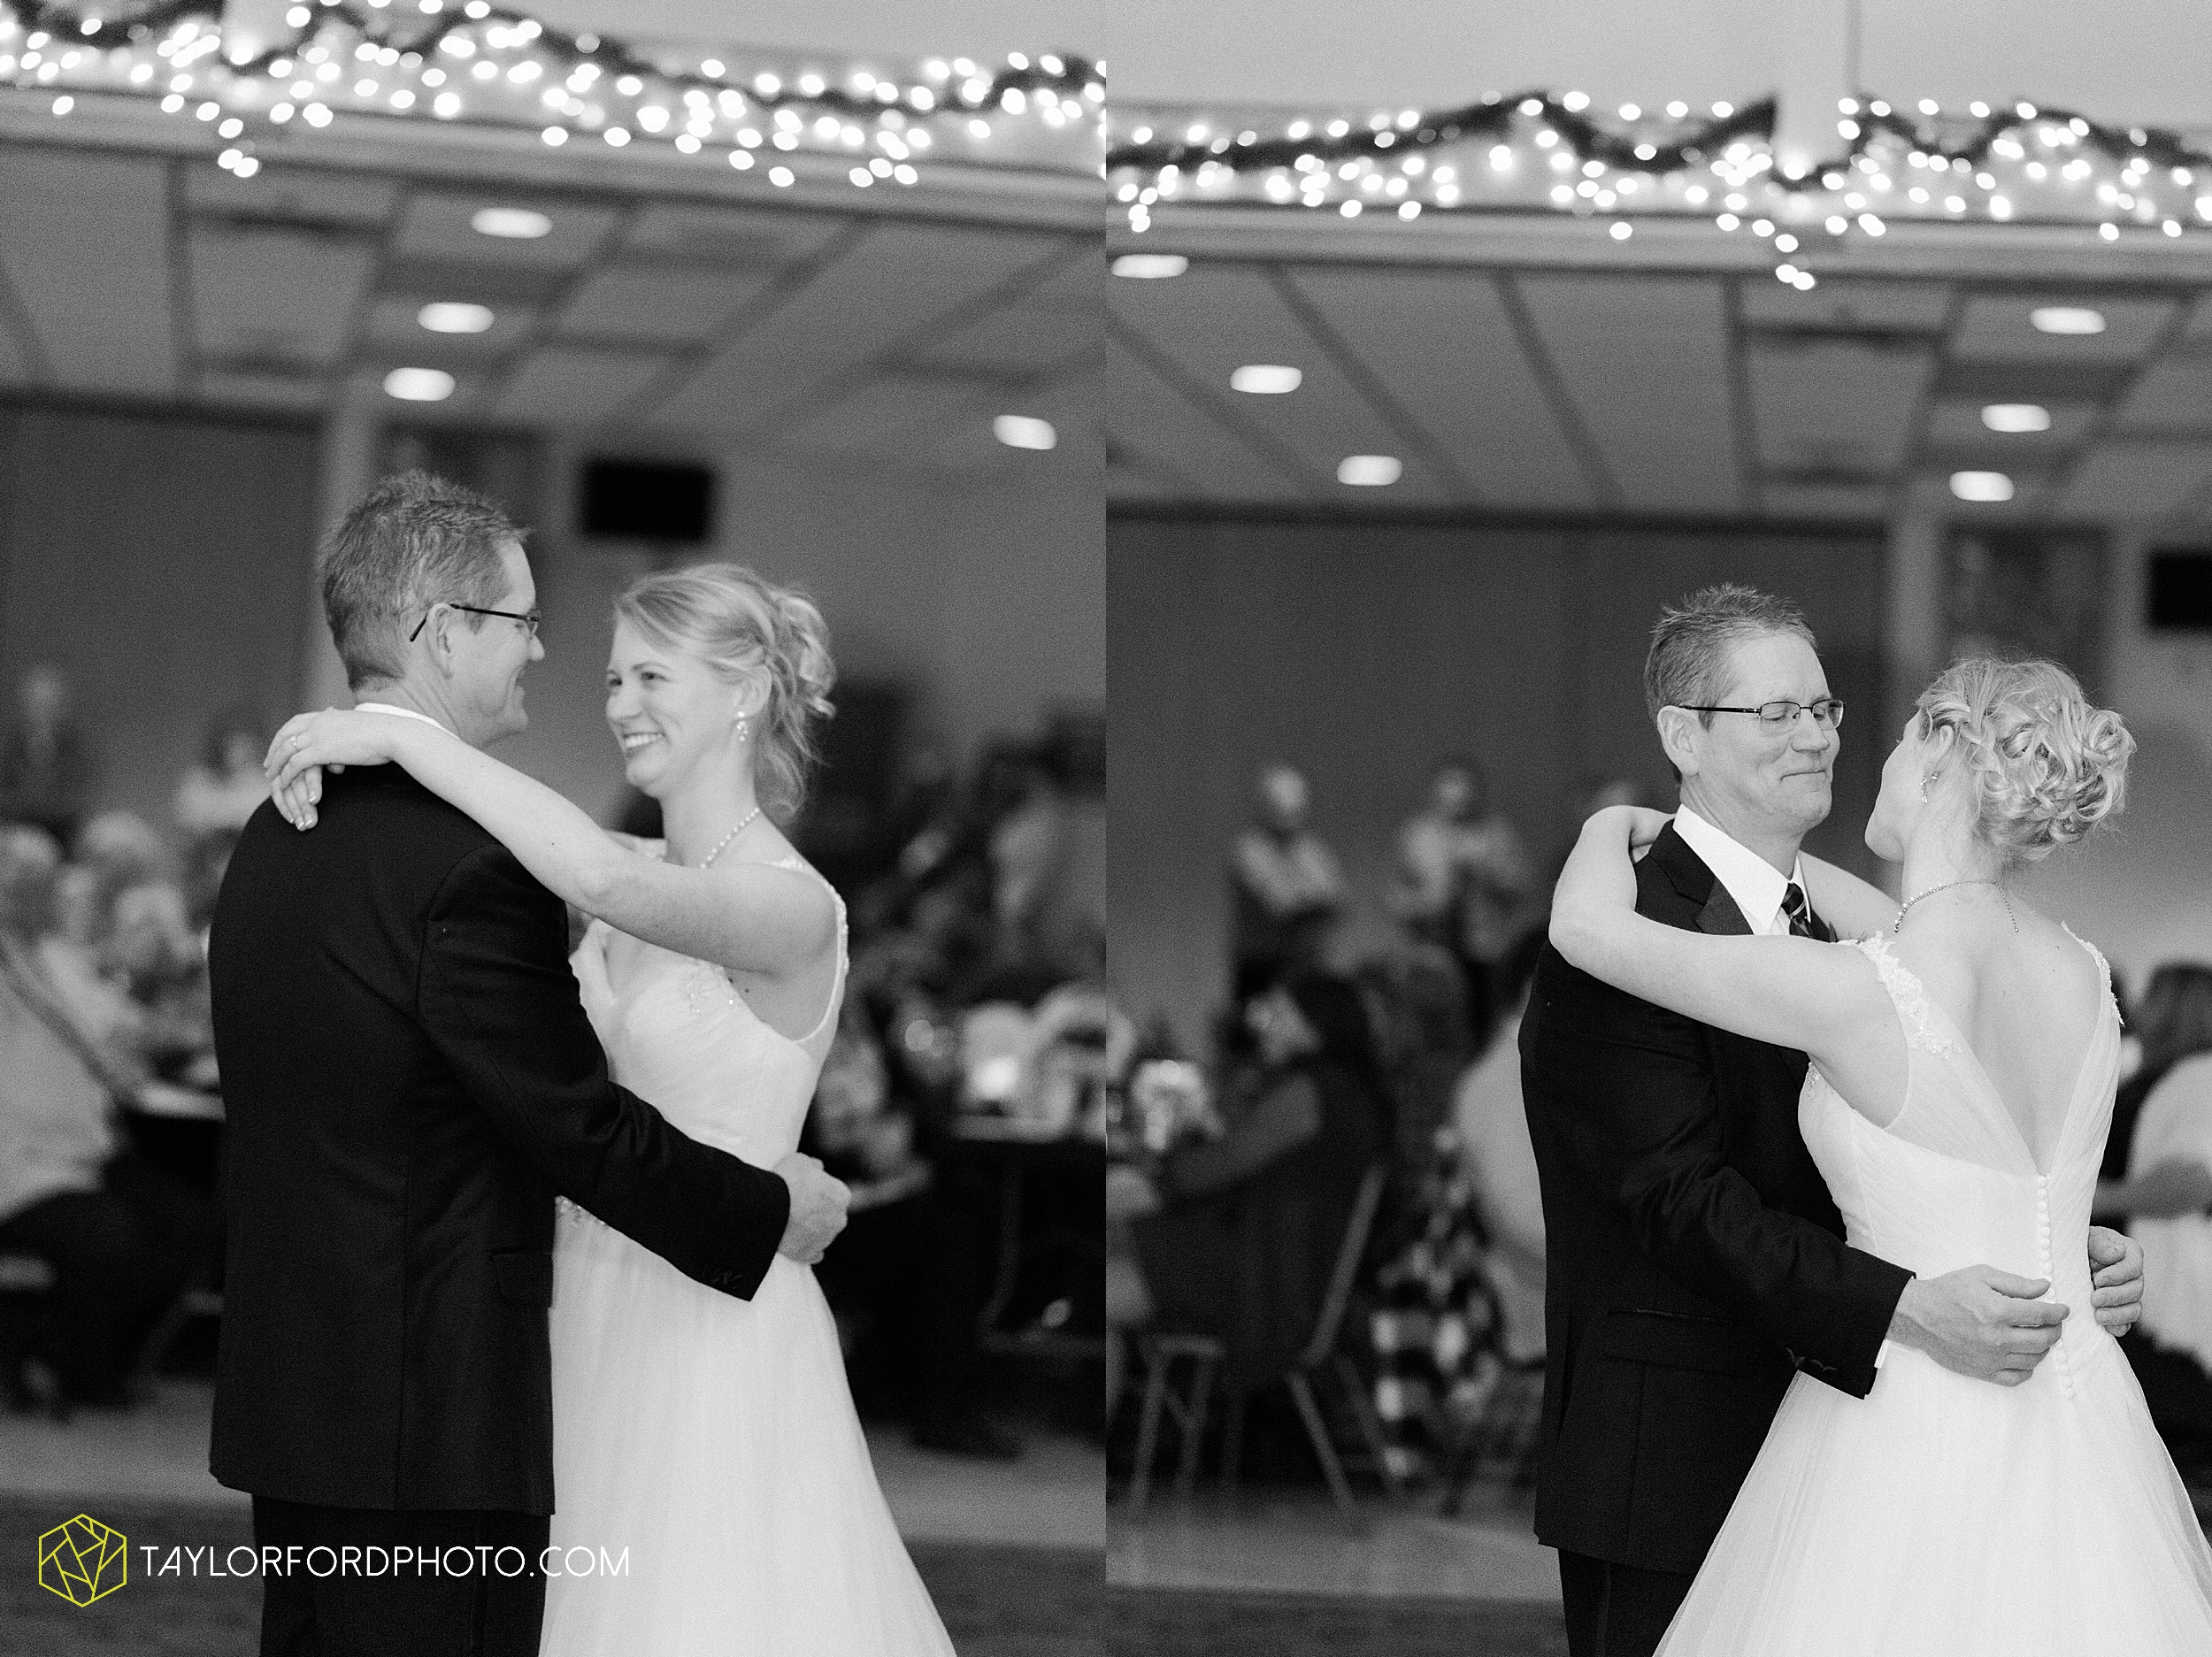 pleasant-view-church-christmas-celina-fraternal-order-of-eagles-reception-wedding-wren-willshire-van-wert-ohio-photography-taylor-ford-hirschy-photographer_2197.jpg